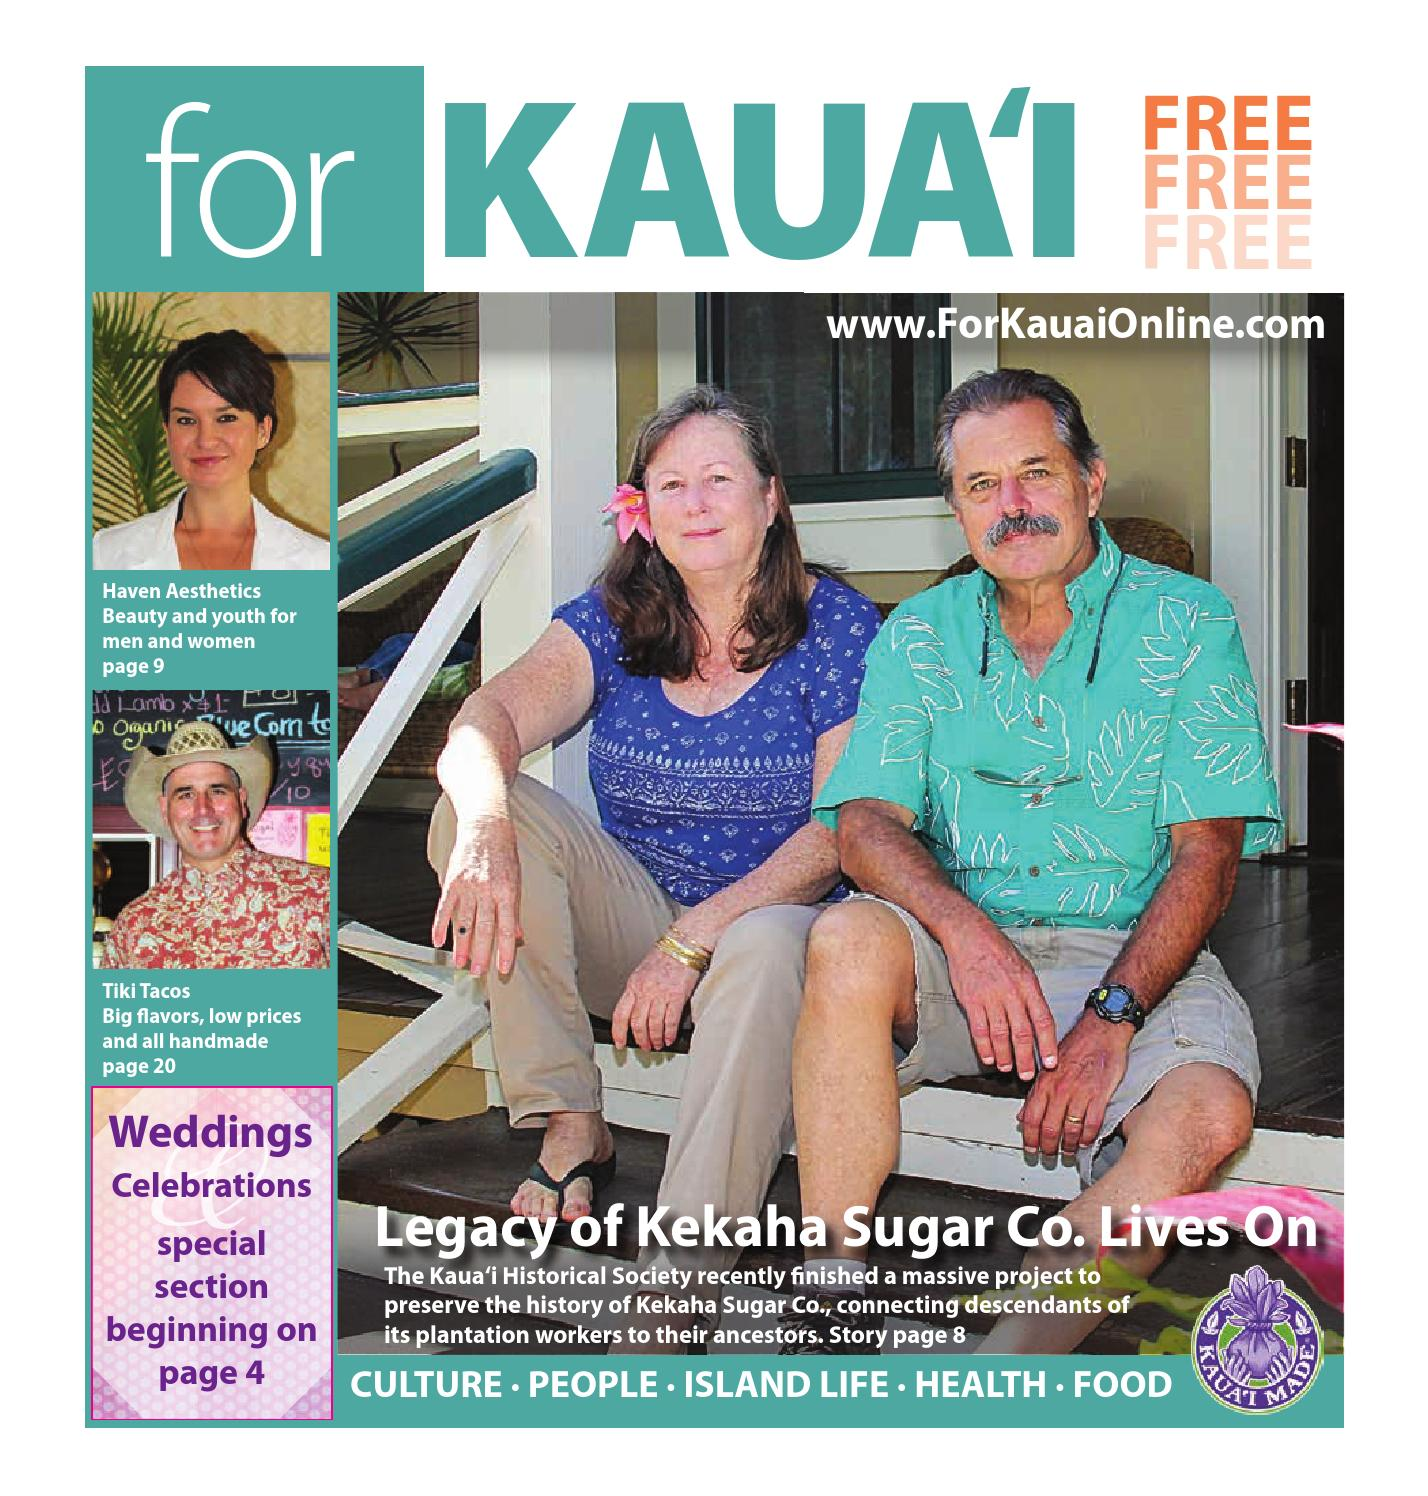 kekaha single women Have an event you would like added to the kauai calendar submit your kauai event here have a question or need help please contact us 808 822-2846 or email events.